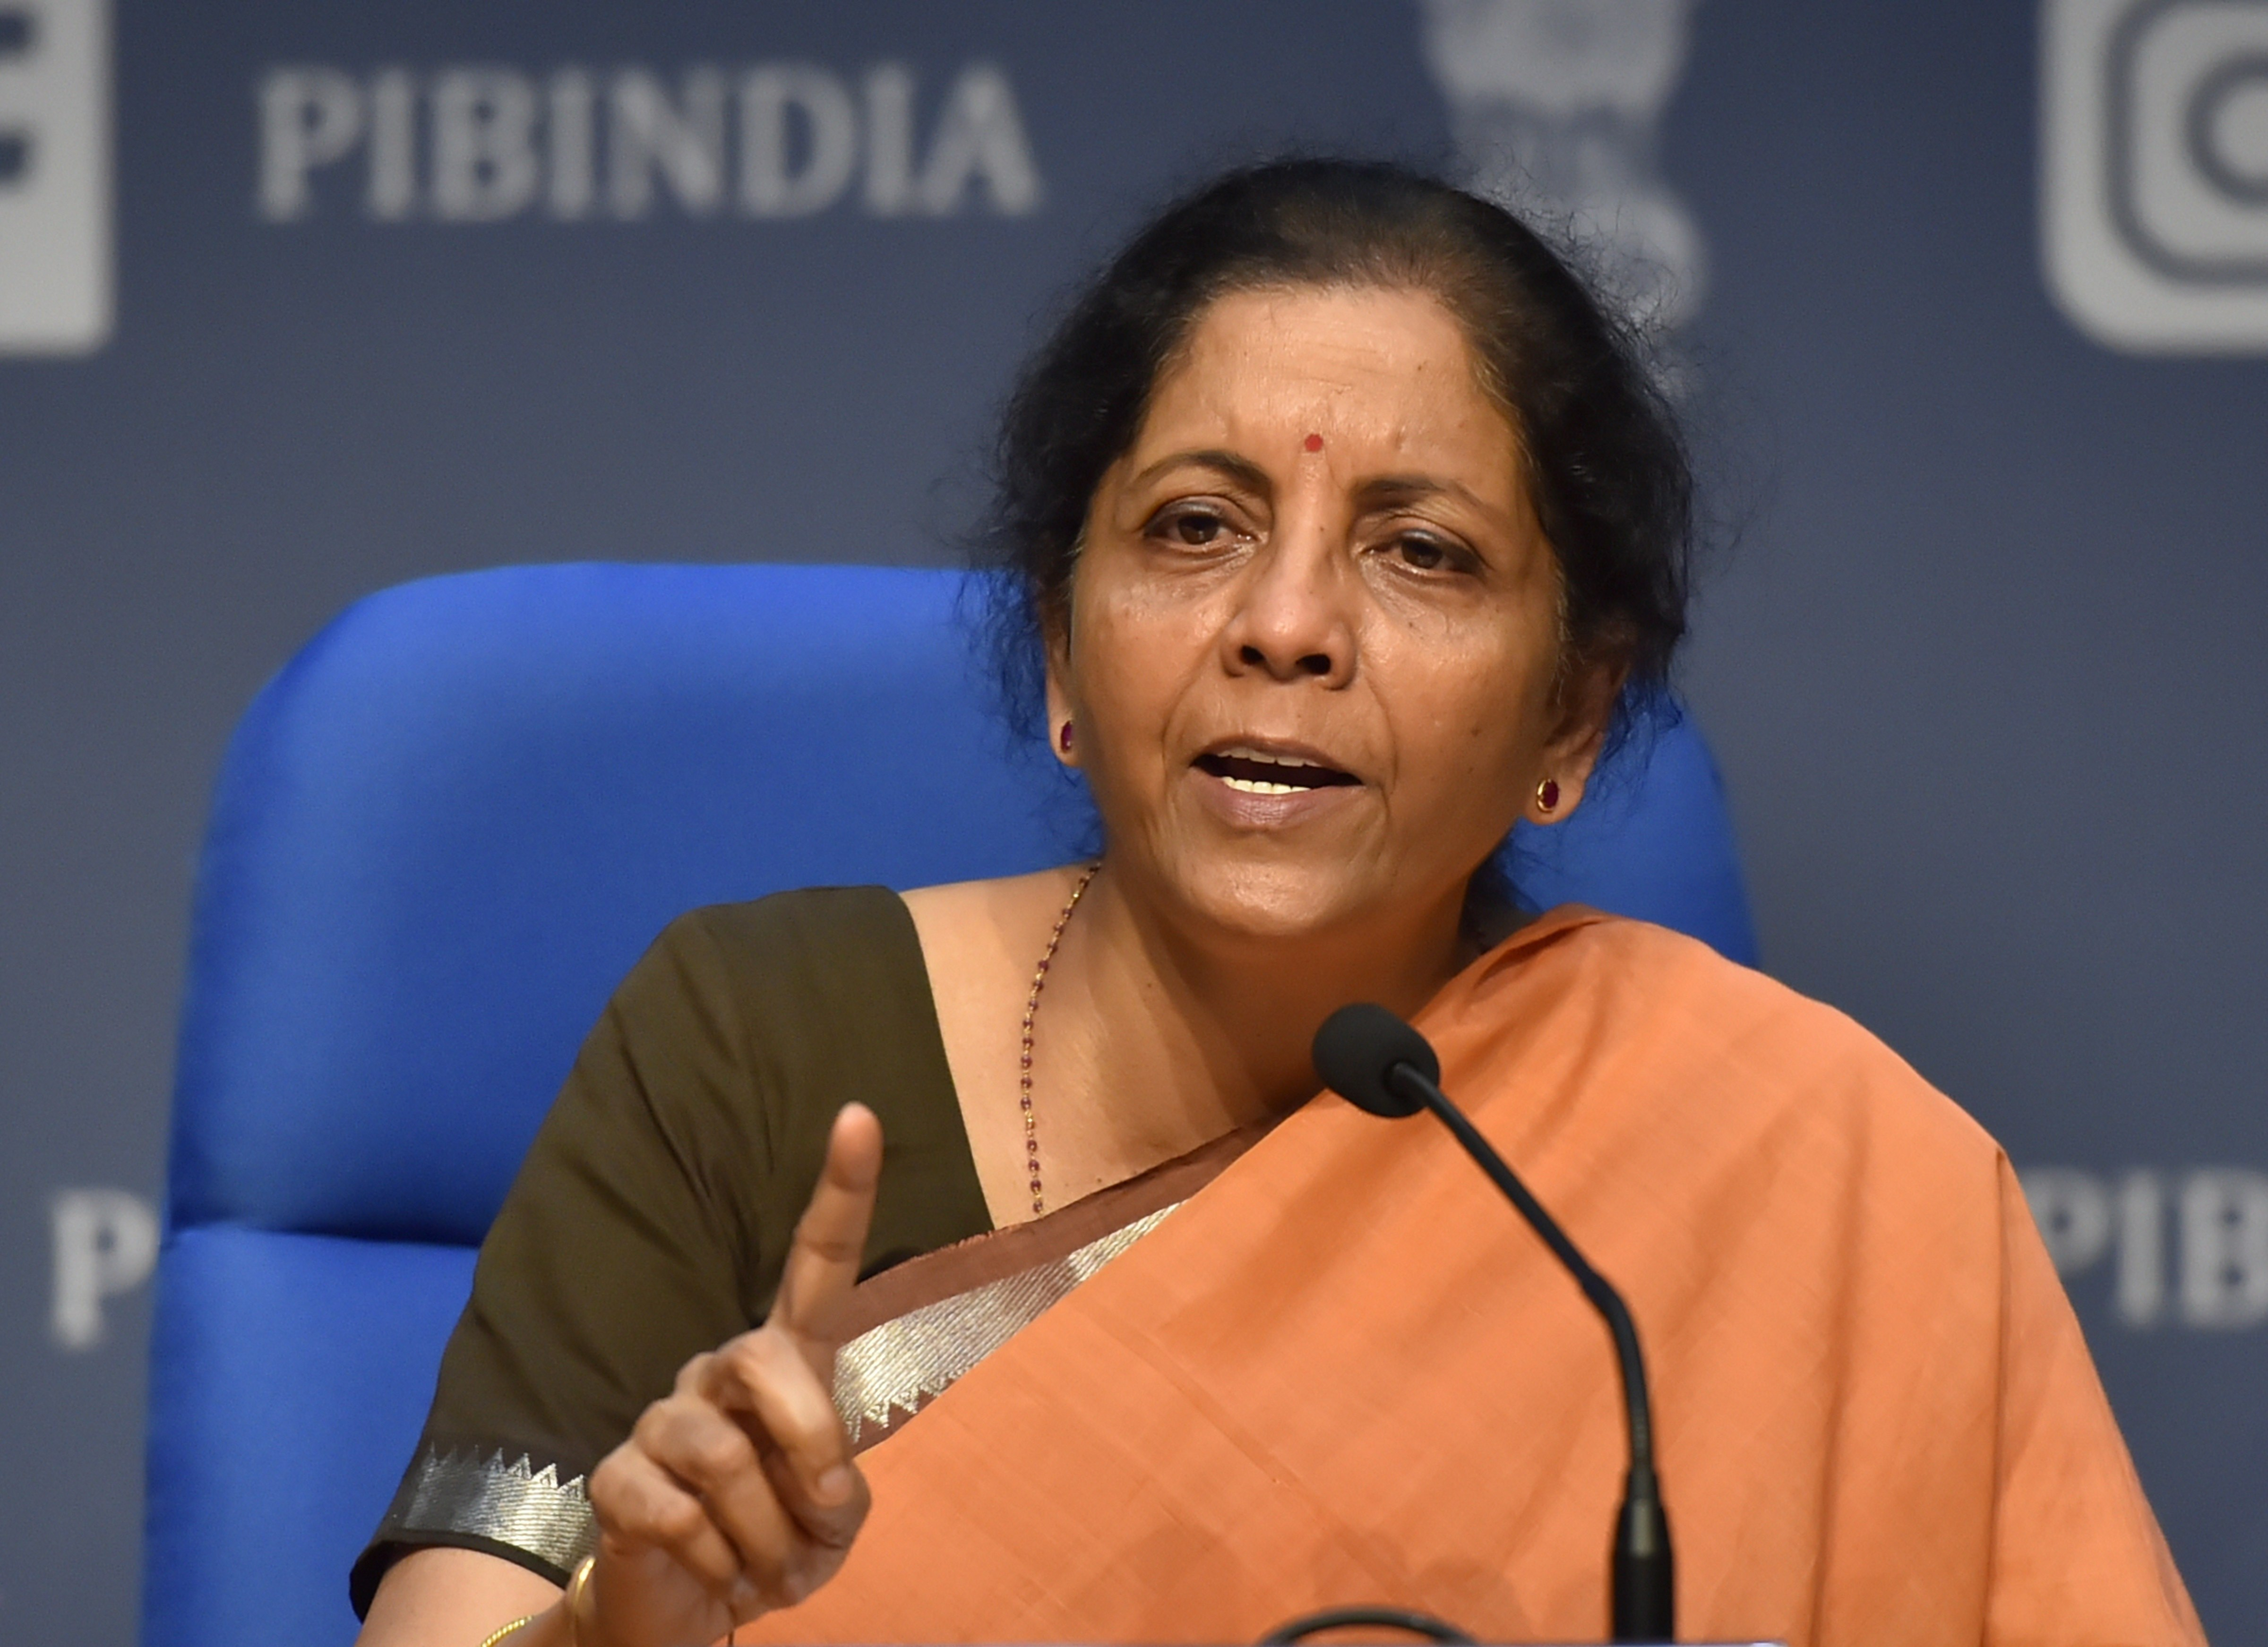 Union finance minister Nirmala Sitharaman addresses a press conference to announce a Rs 1.7 lakh crore Gareeb Kalyan Yojana to help the poor in the view of the coronavirus lockdown, at National Media Centre in New Delhi, Thursday, March 26, 2020